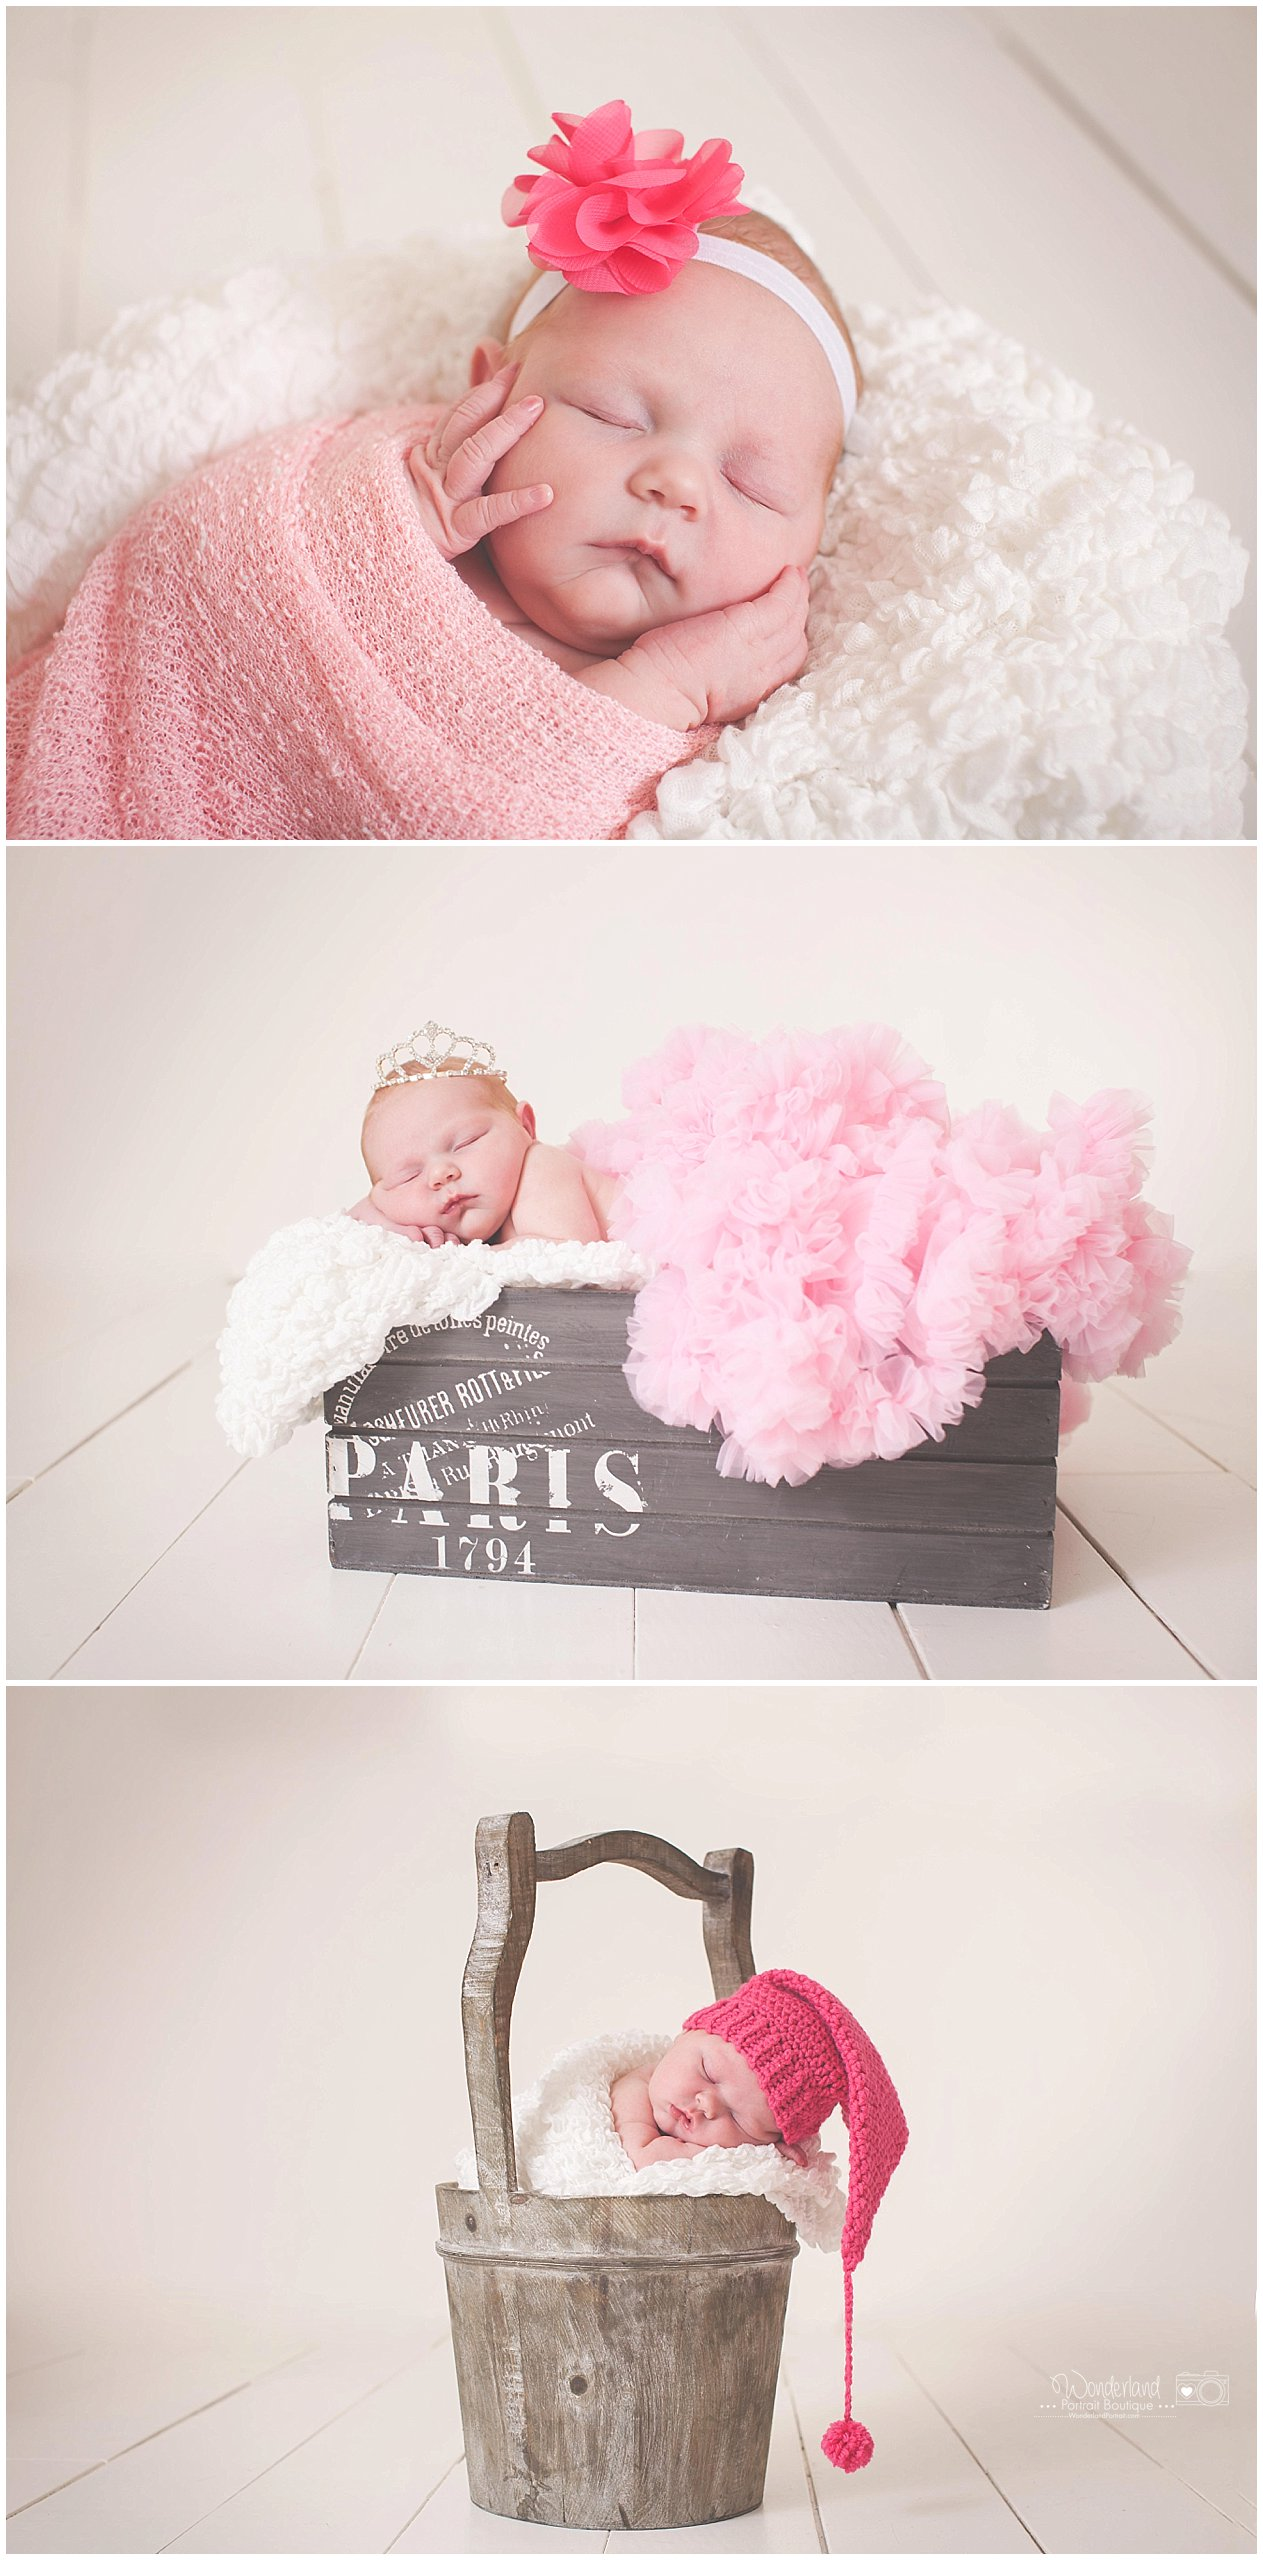 Baby in a Bucket Pose, Petti Skirt, Hands on Face Newborn Pose  Abington PA Newborn Photography | WonderlandPortrait.com